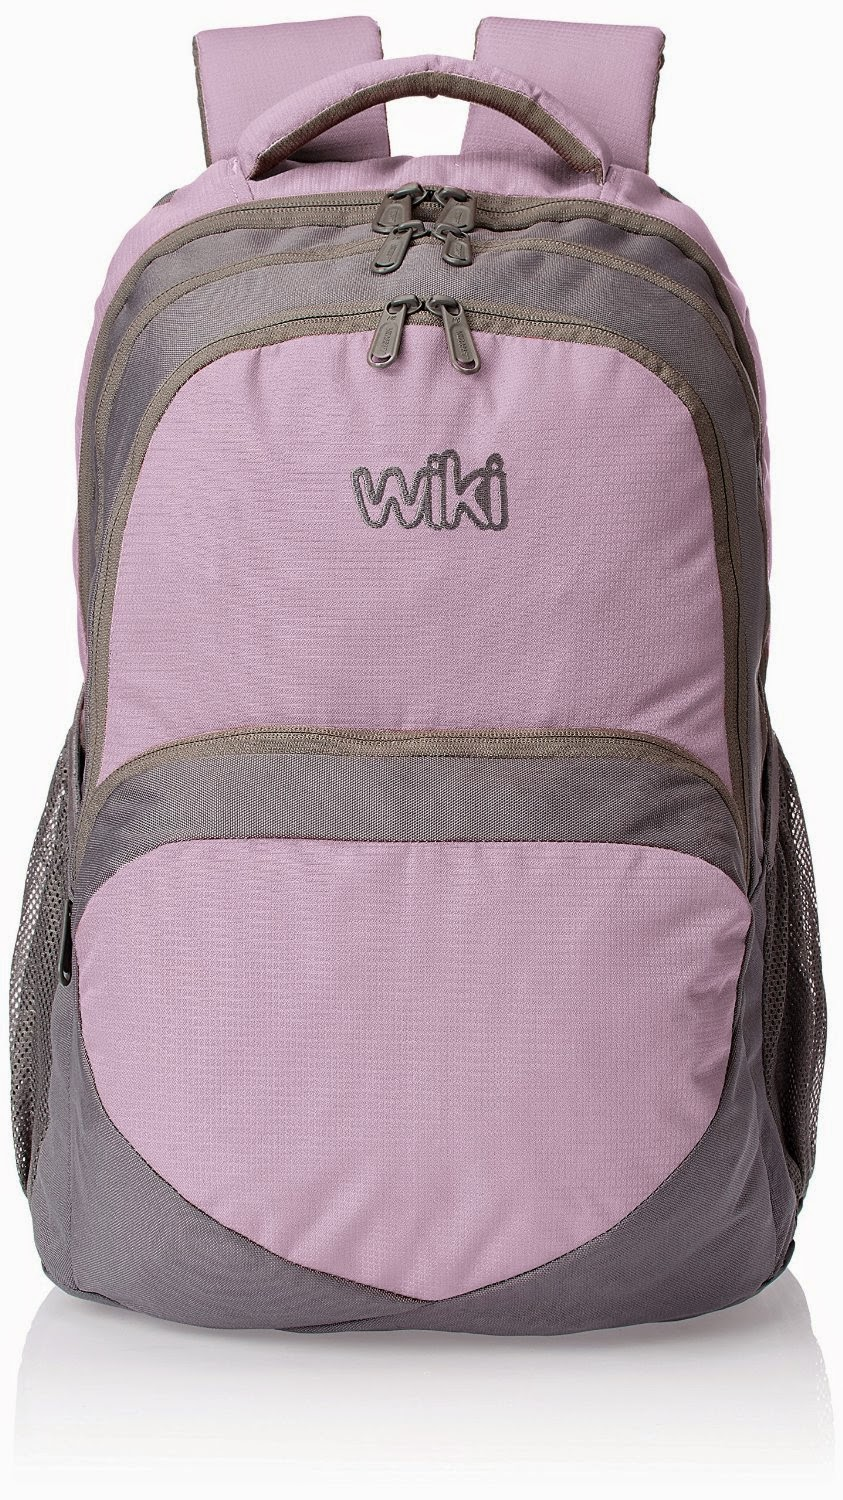 Amazon: Buy Wiki Pink Casual Backpack at Rs.1095